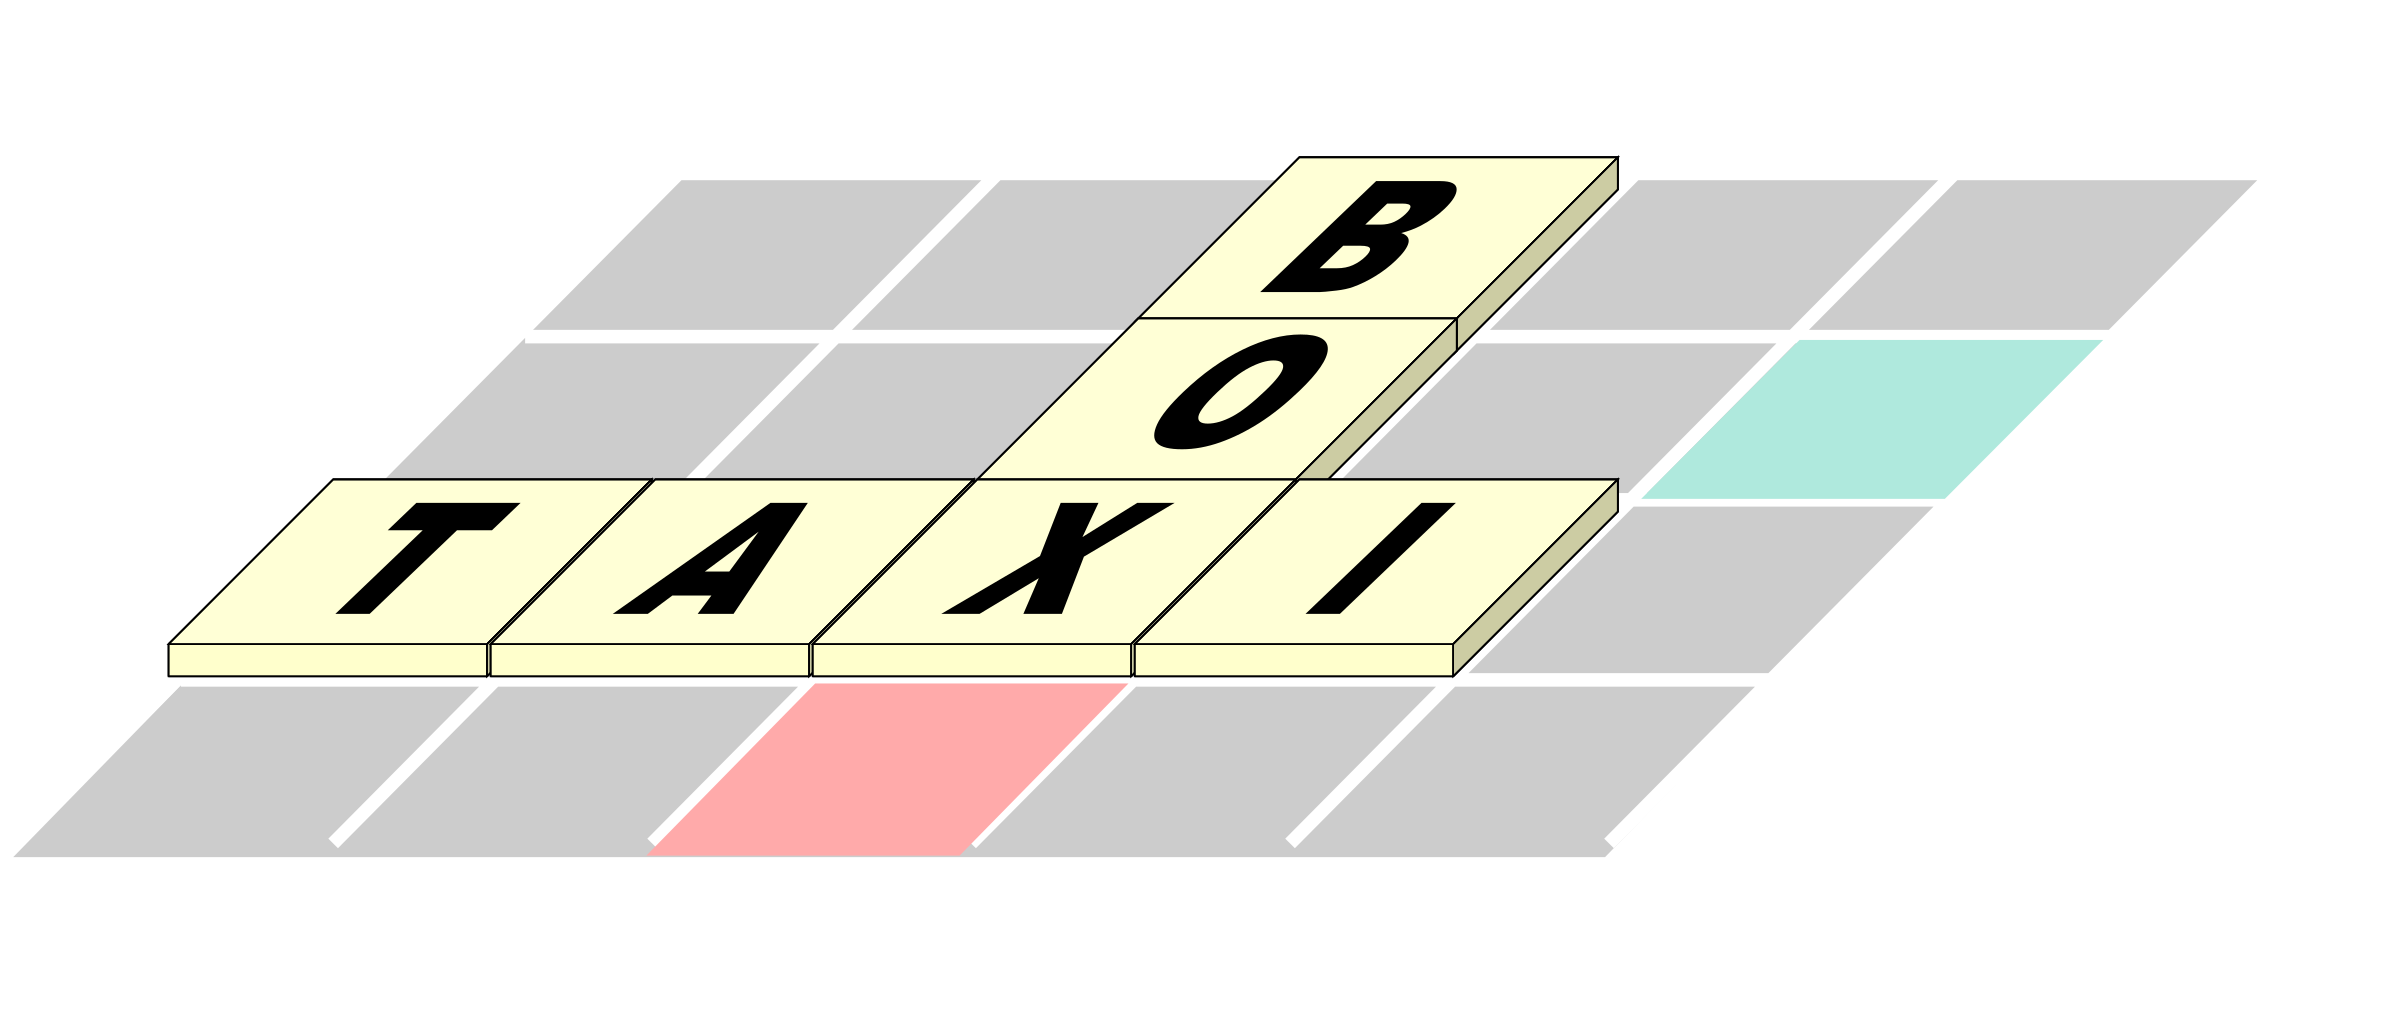 Big image png. Game clipart game scrabble